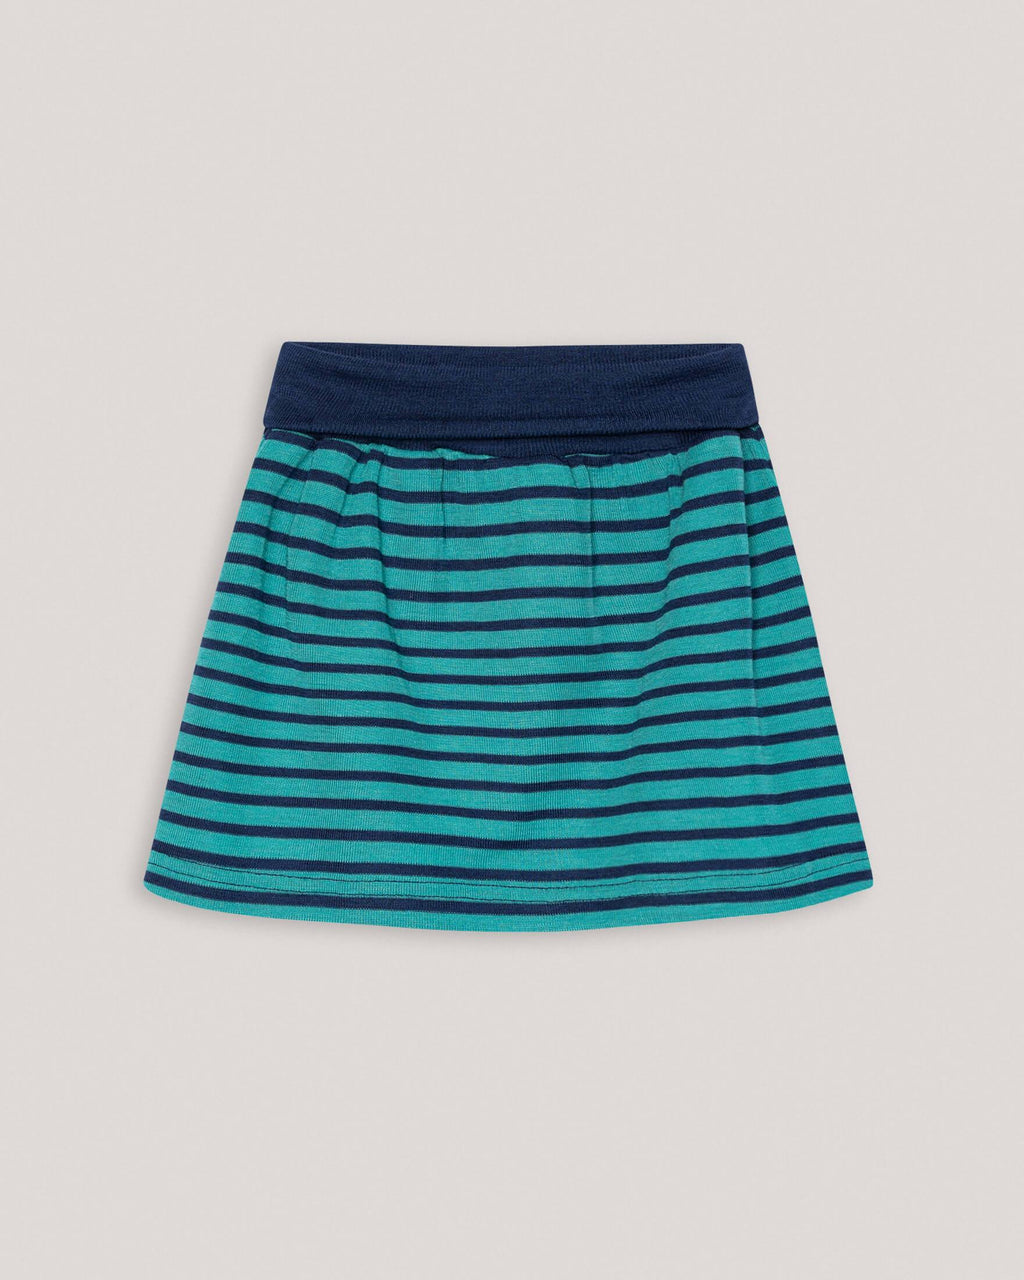 variant_1 | EN Blue Skirt Kids Stripes | DE Blau Rock Kinder mit Streifen